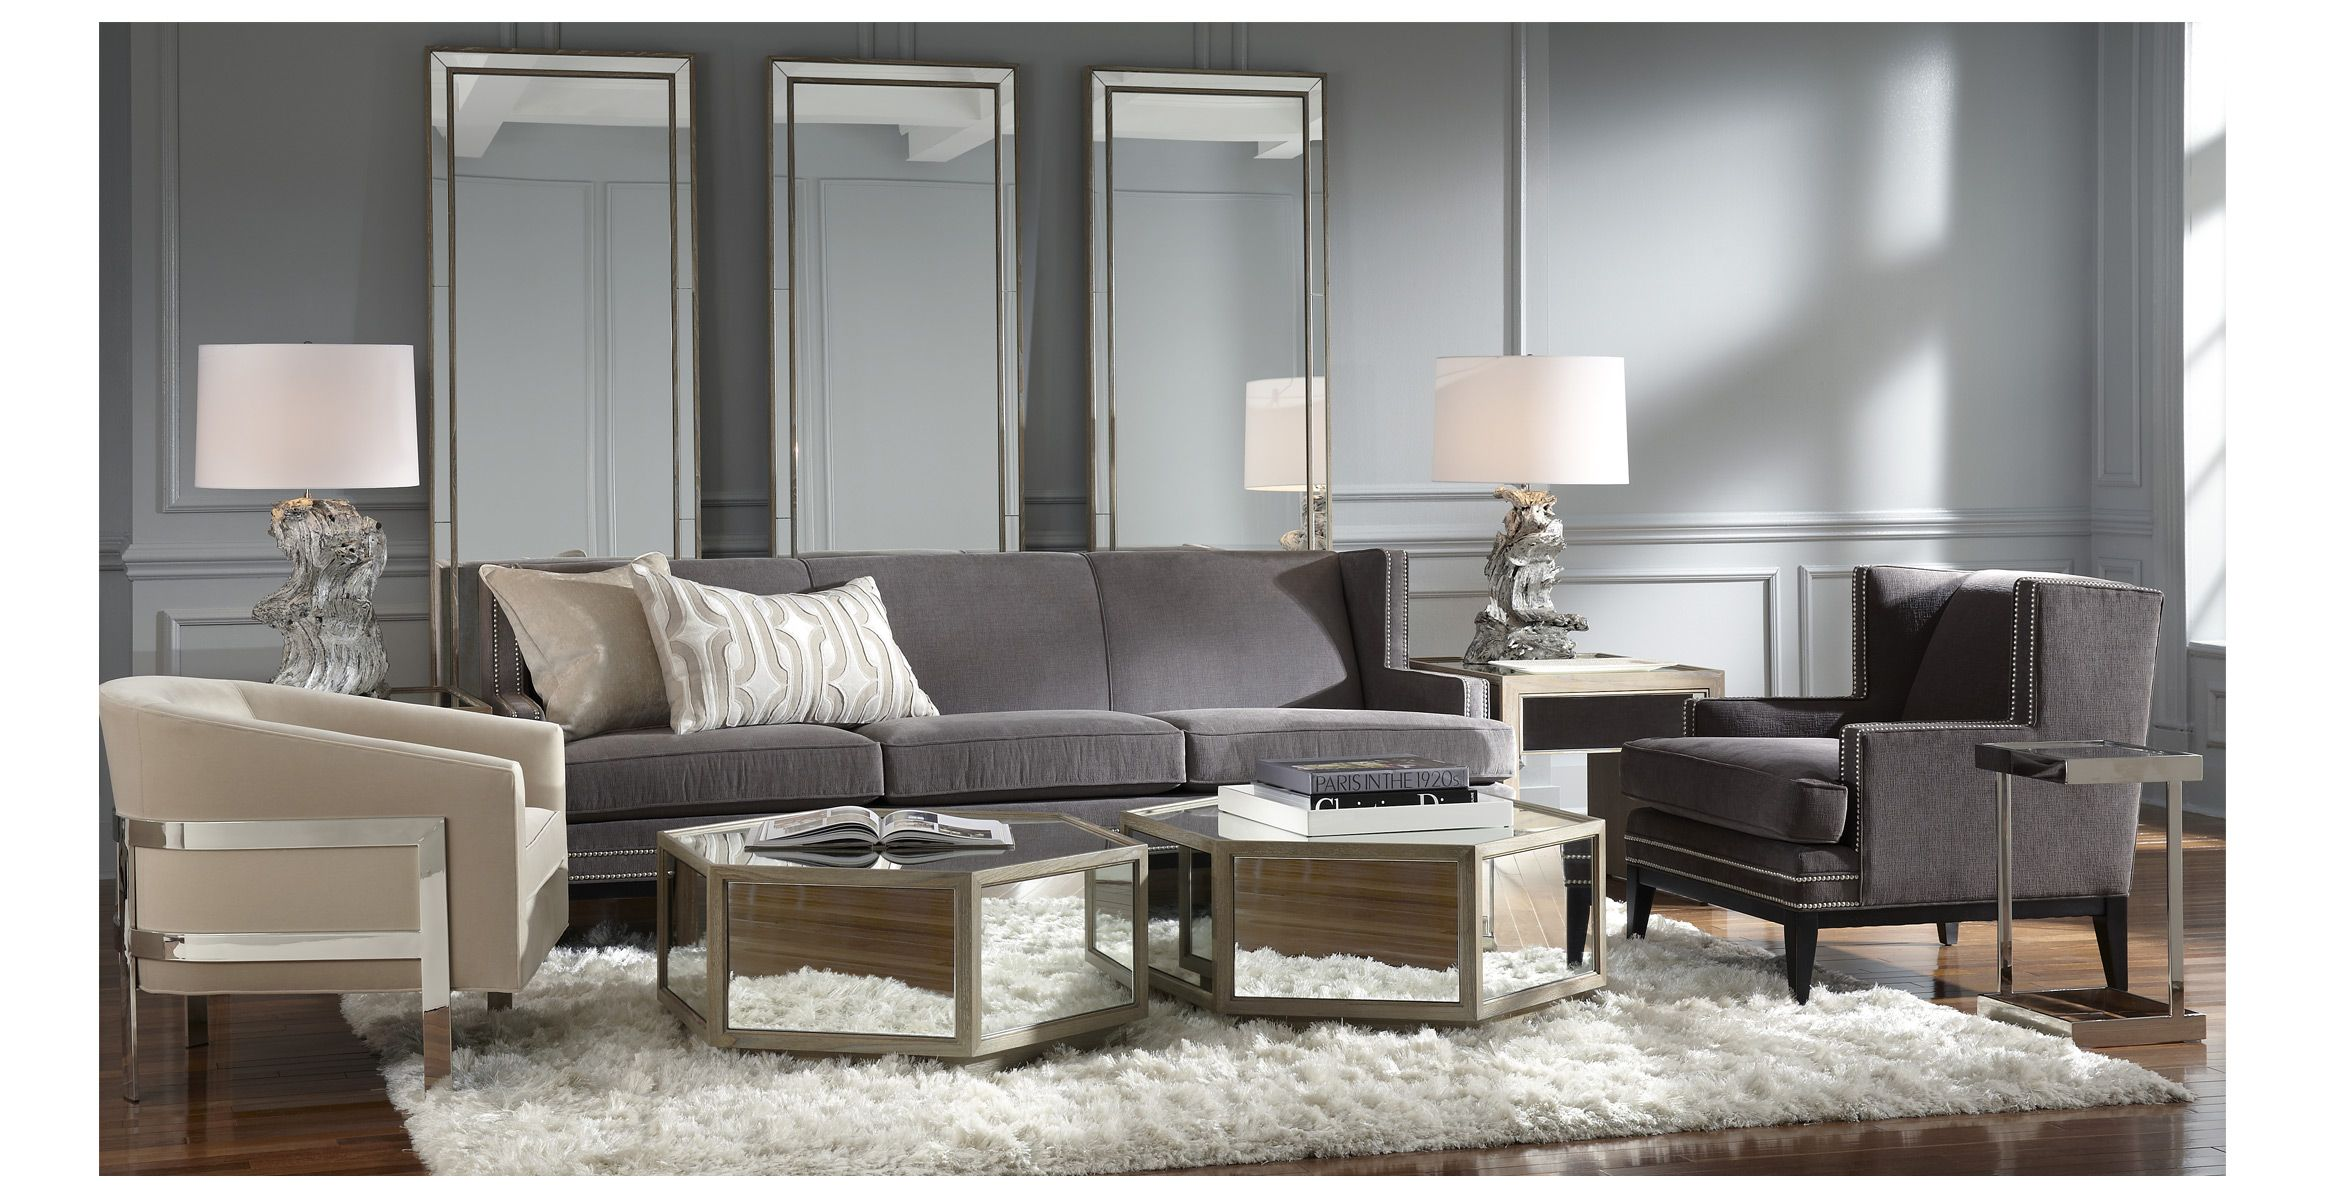 Mitchell Gold Furniture is located in Boston, Massachusetts. This organization primarily operates in the Furniture Stores business / industry within the Home Furniture, Furnishings and Equipment Stores sector. This organization has been operating for approximately 11 years. Mitchell Gold Furniture.